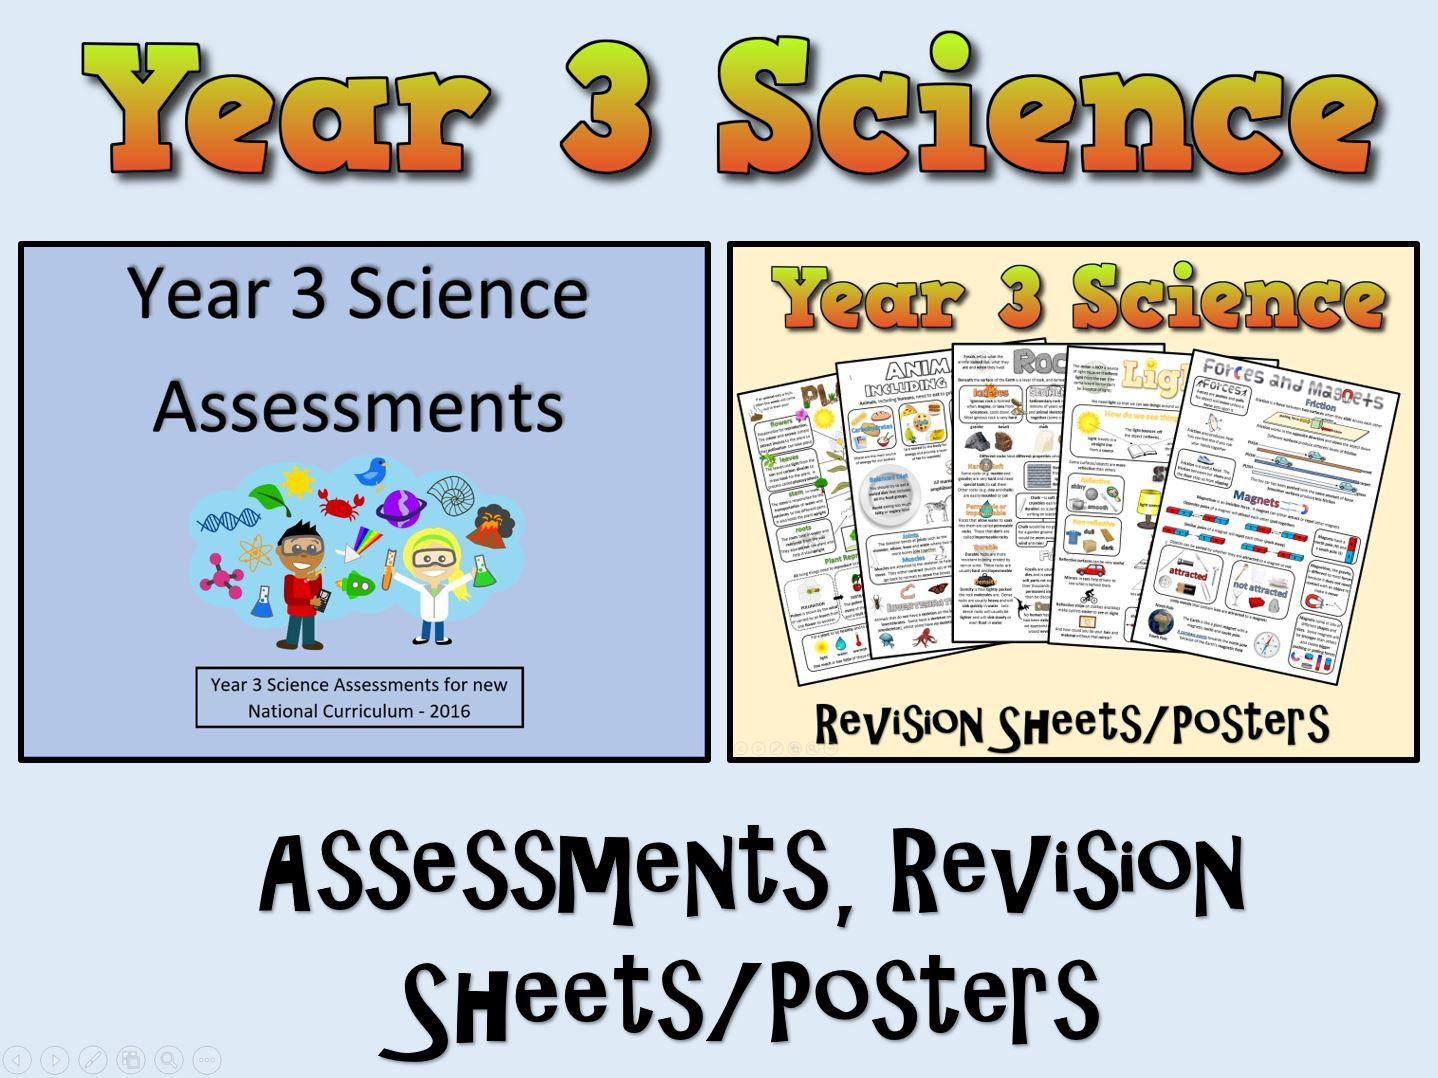 Year 3 Science Assessments Posters Revision Sheets